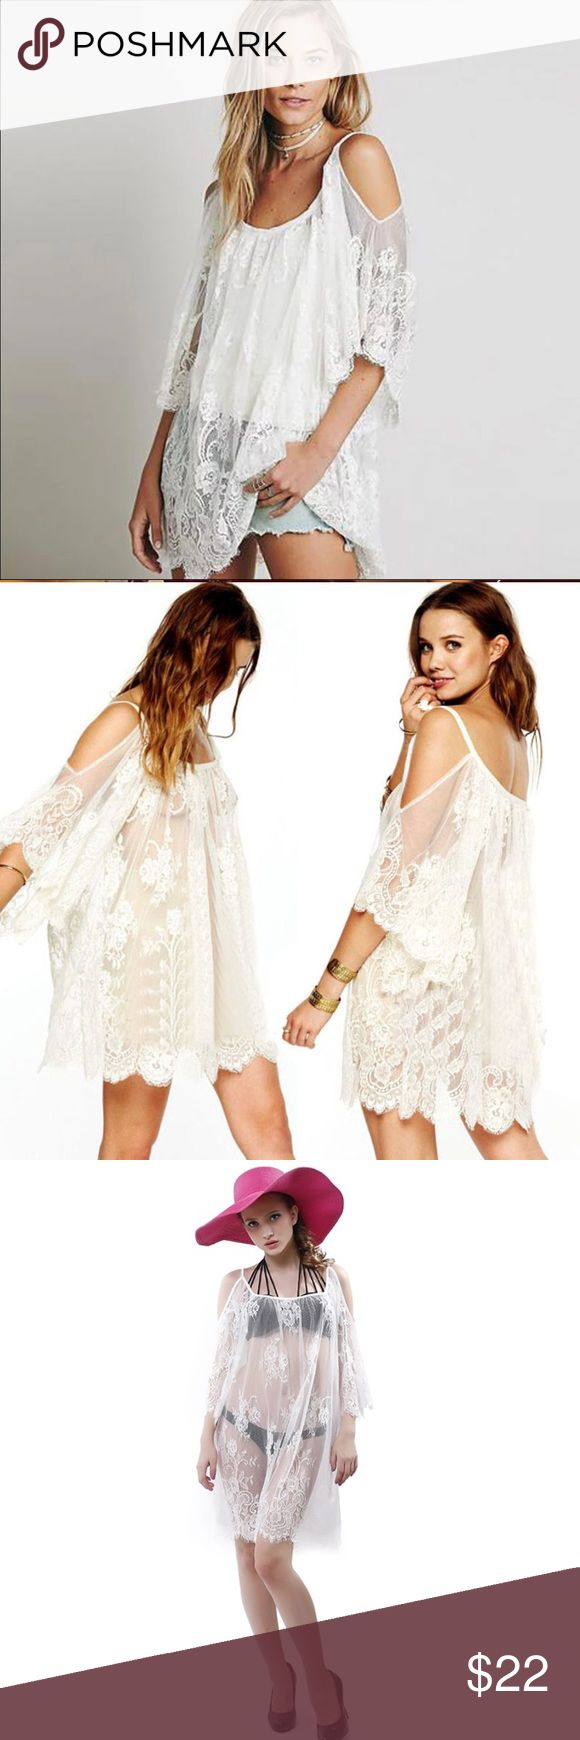 Spotted while shopping on Poshmark: Sexy Summer Hippie Short Sheer Beach Dress - White! #poshmark #fashion #shopping #style #Other